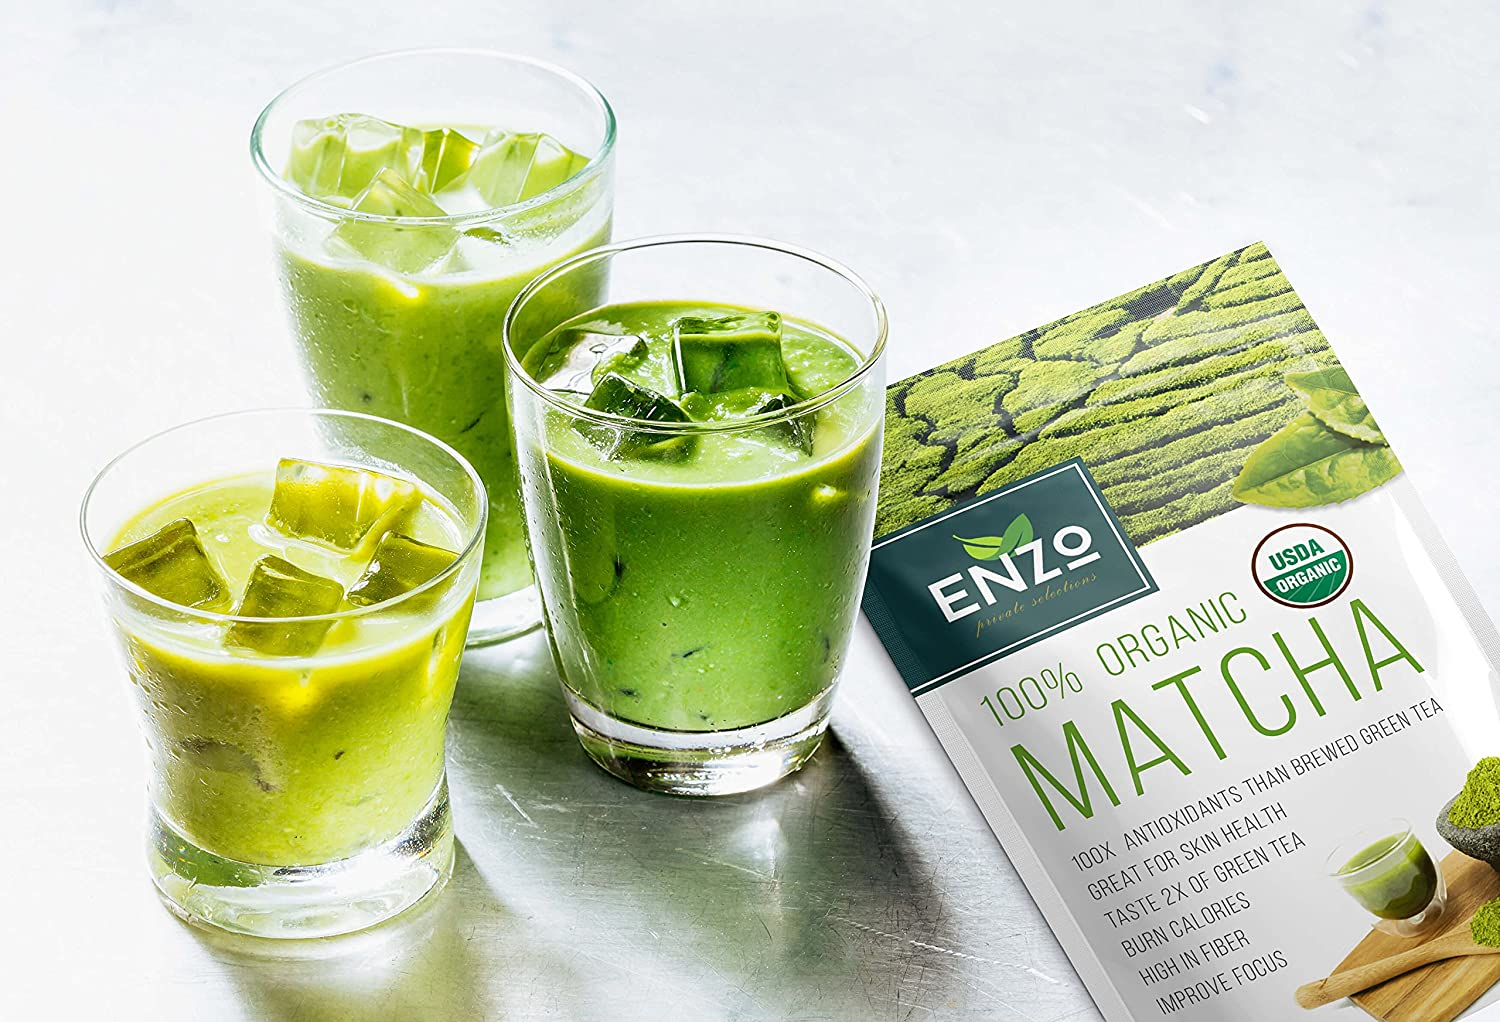 enzo matcha green tea